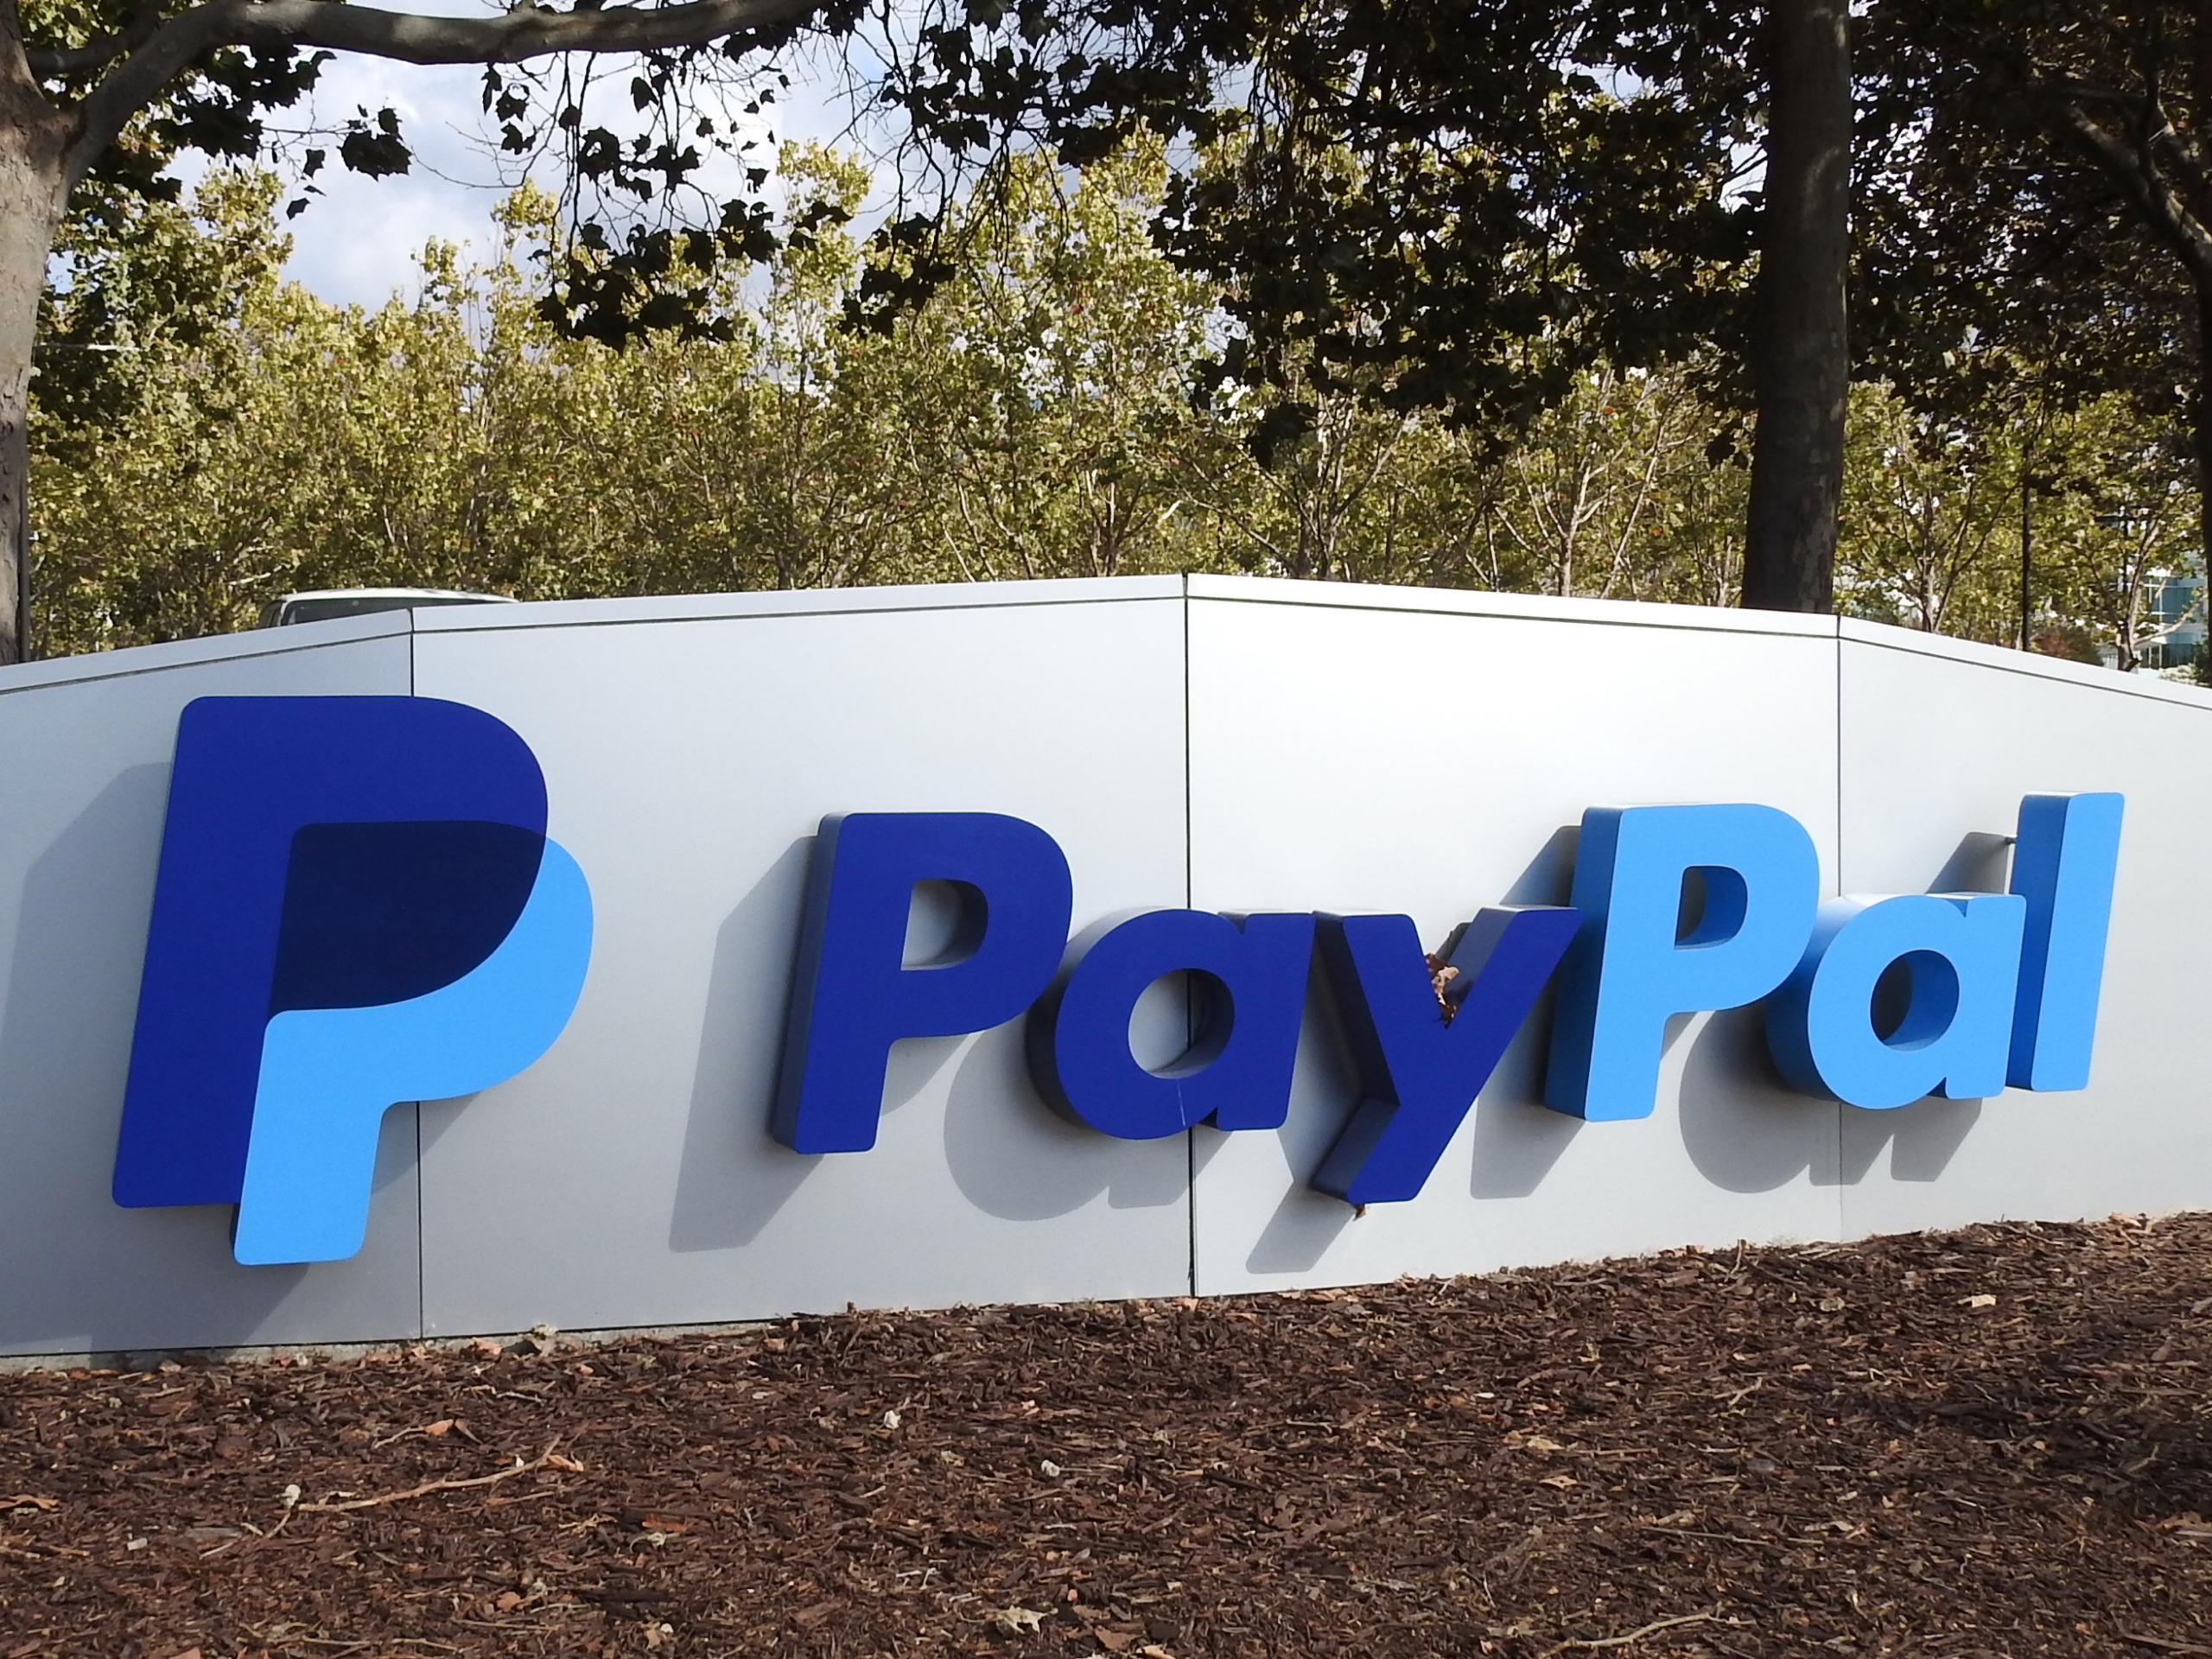 Entrance to PayPal's corporate headquarters in San Jose, California.